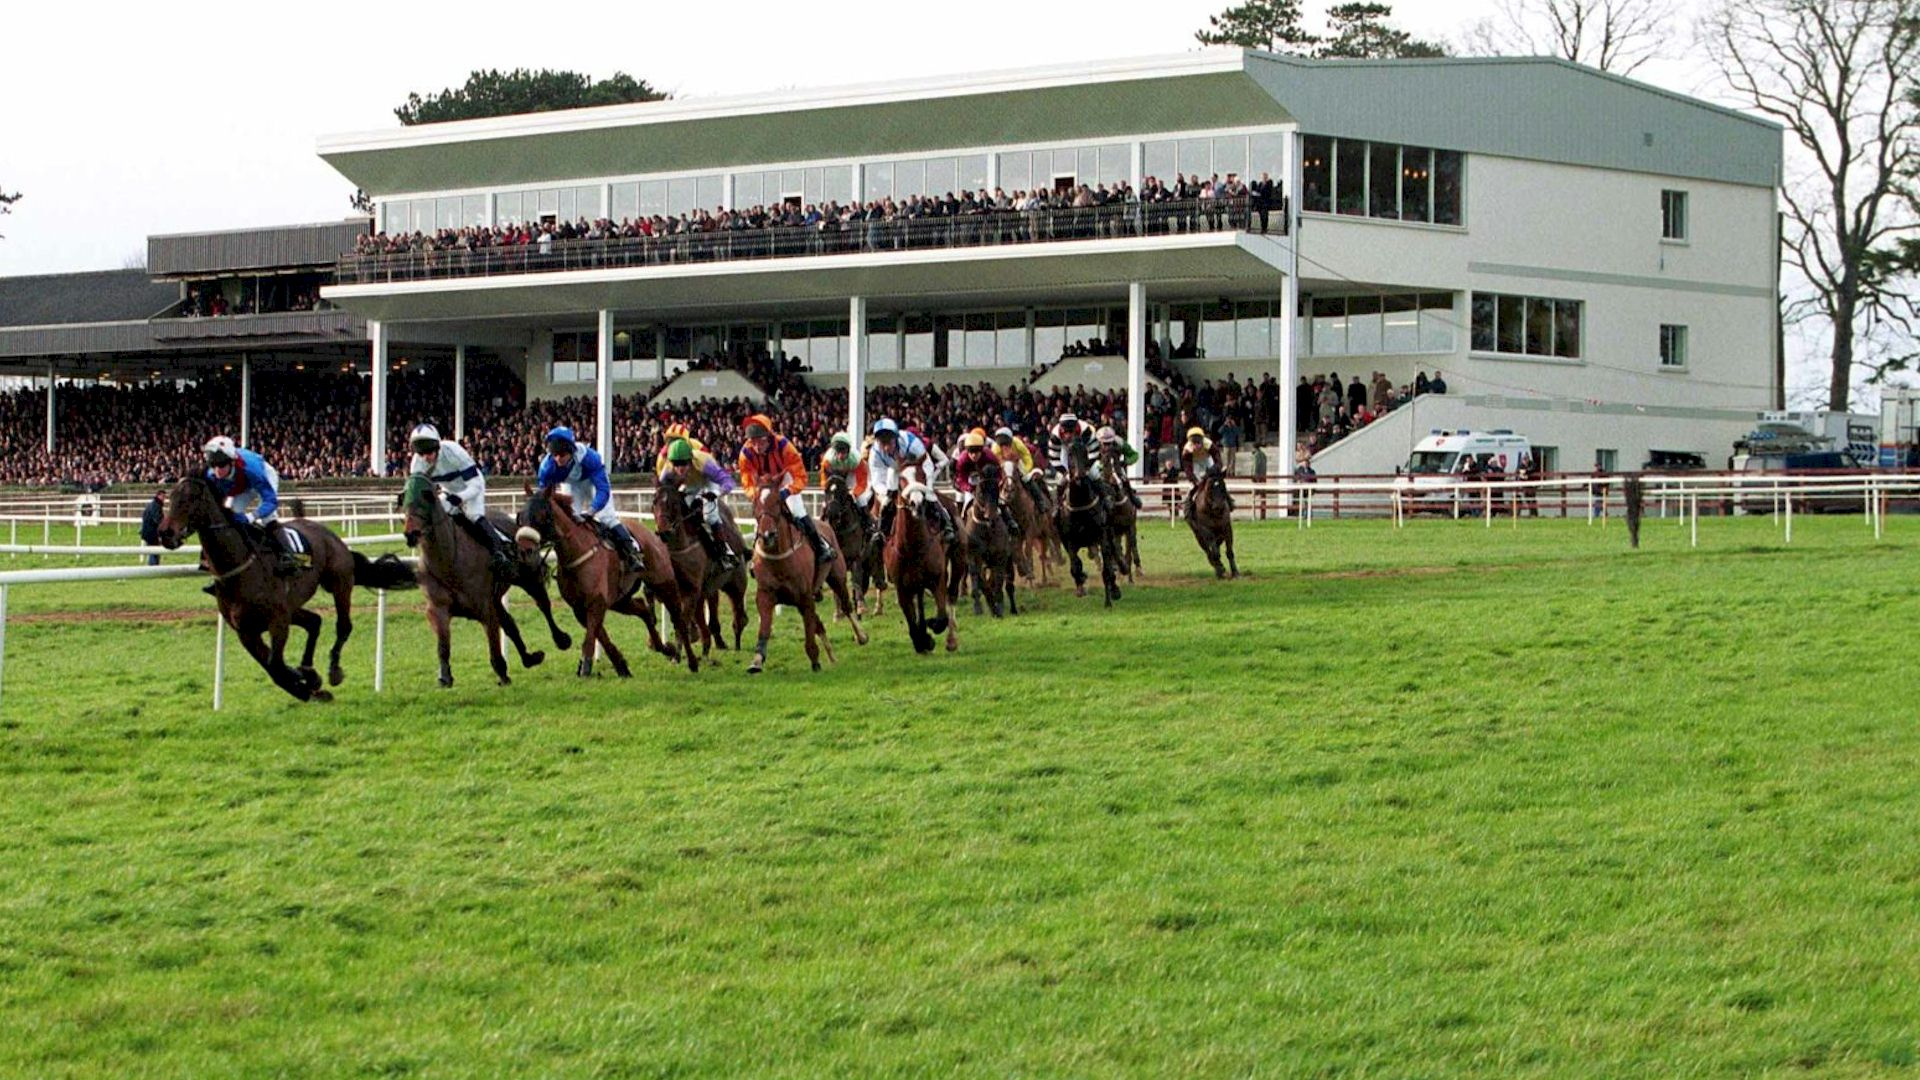 Race and Stay Horse Racing Packages and Racing Breaks for Gowran Park Races in Kilkenny Ireland